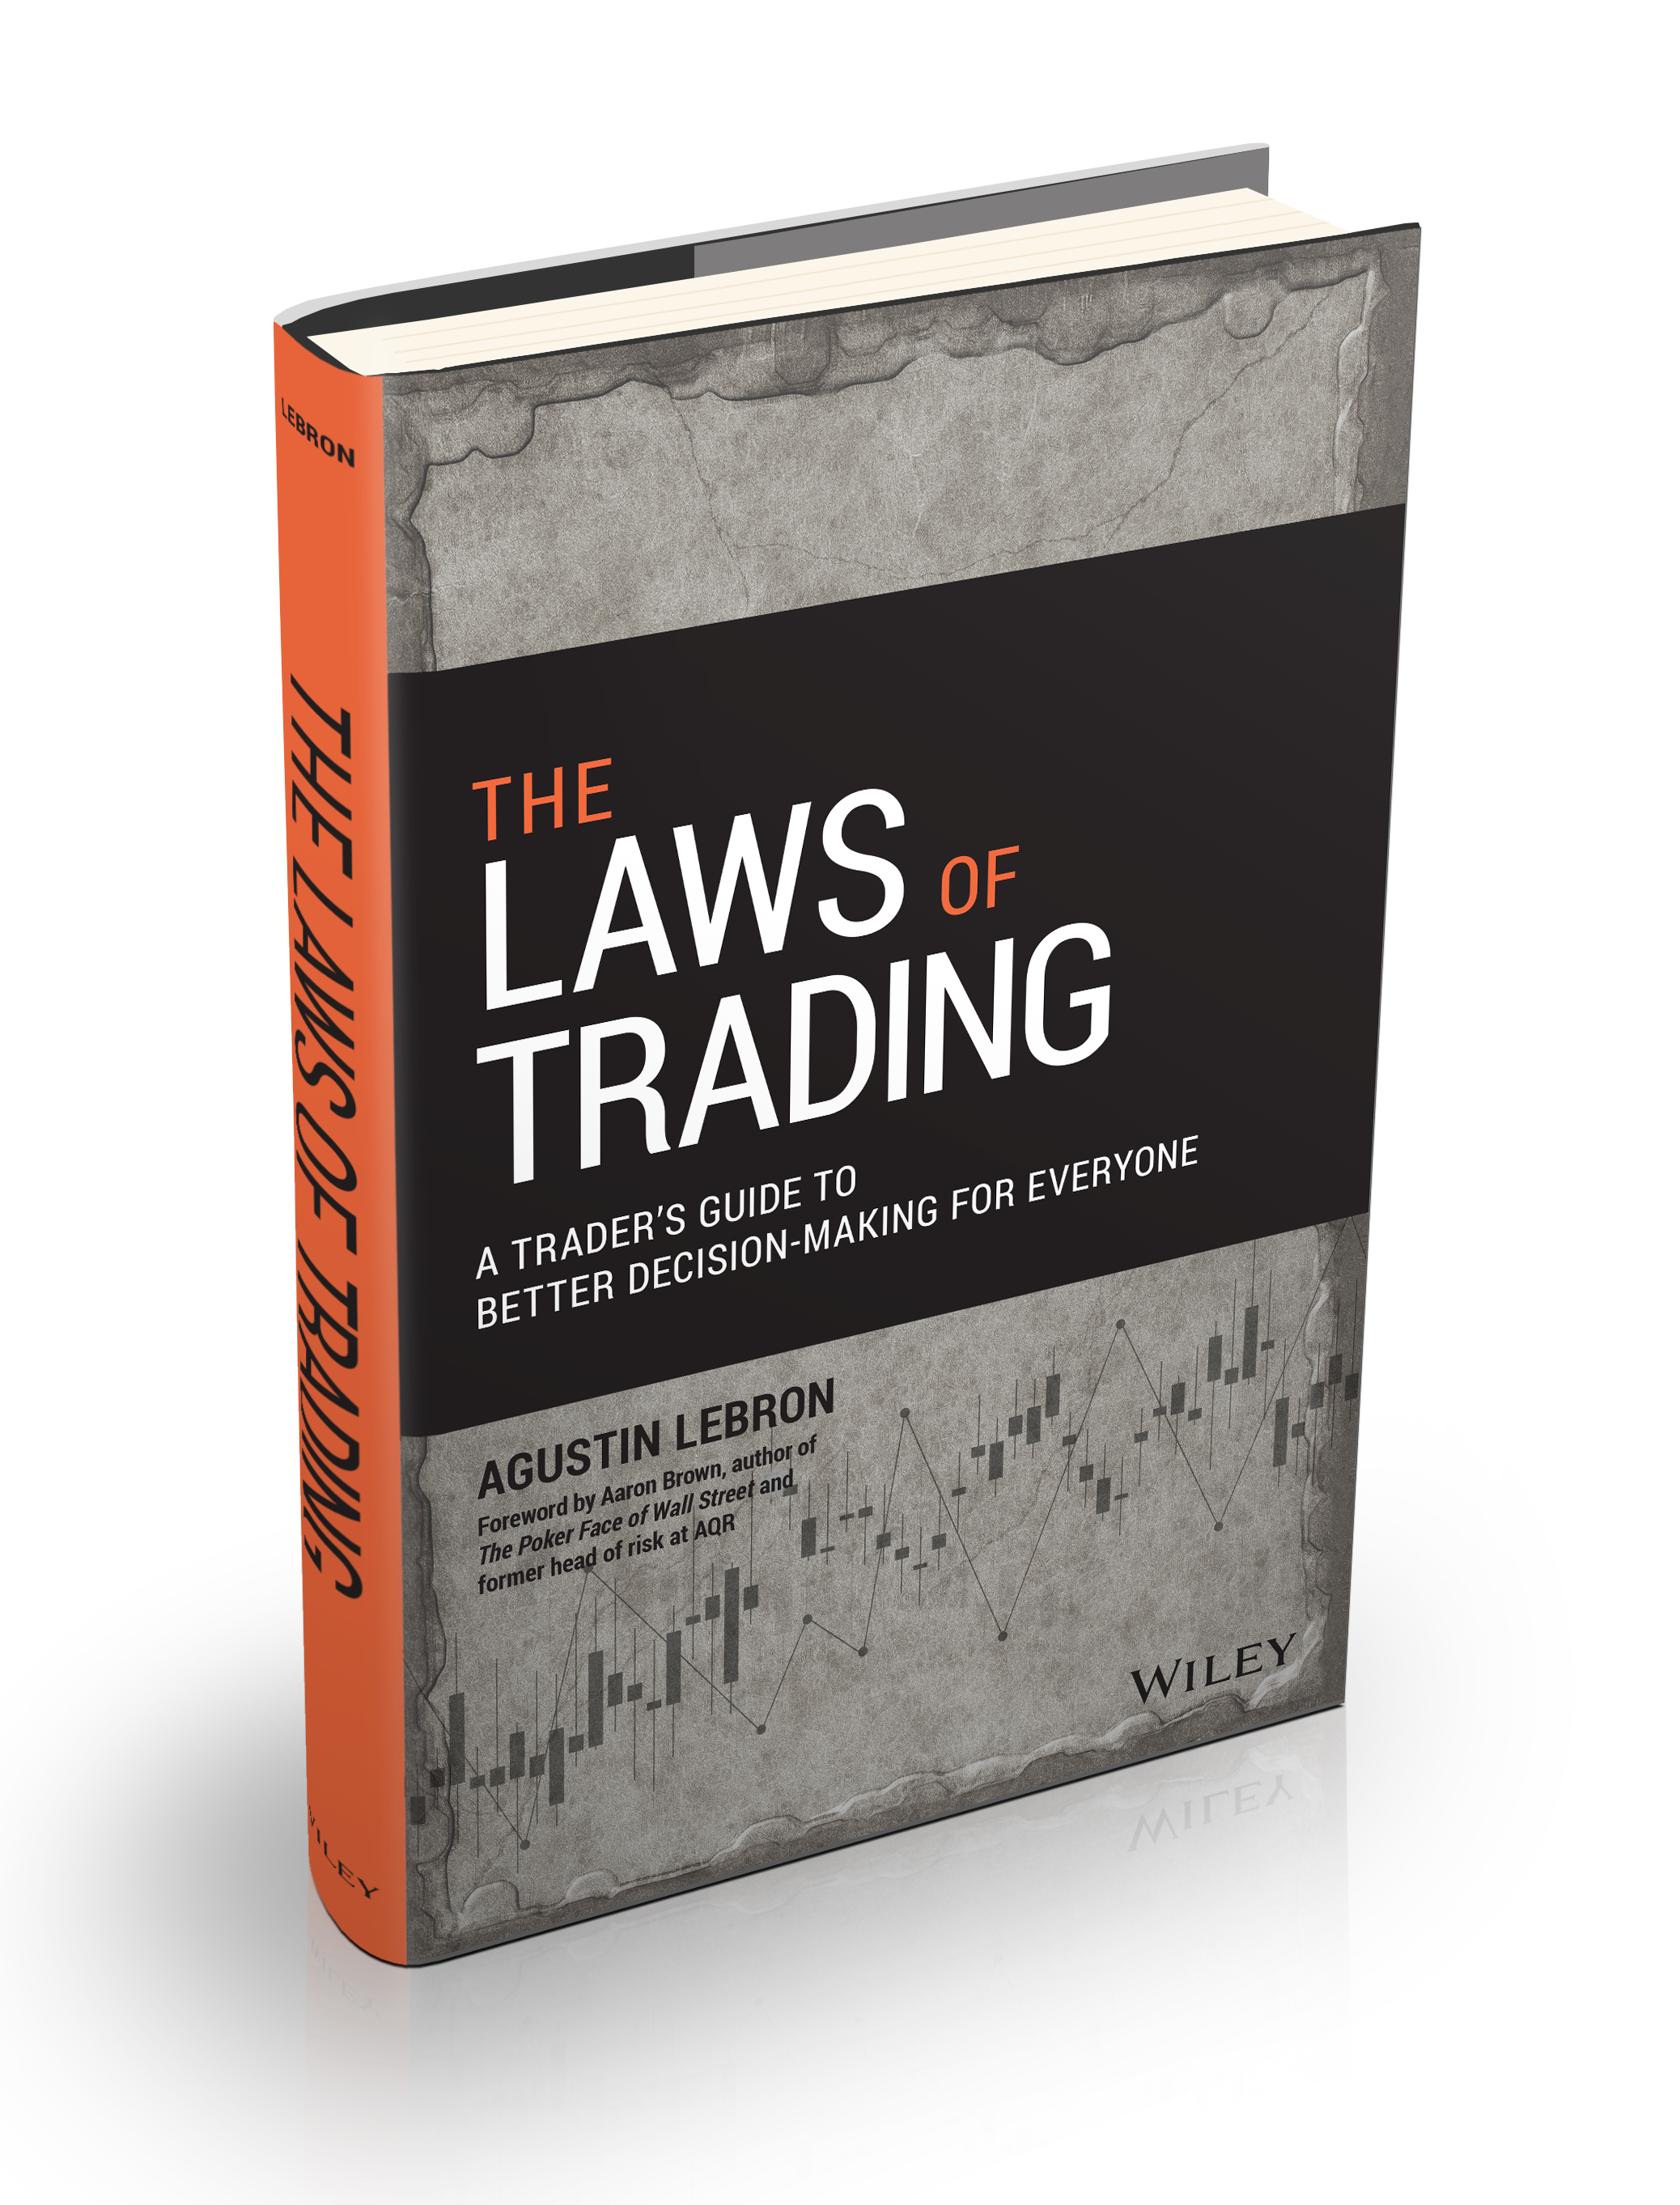 The Laws of Trading written by Agustin Lebron